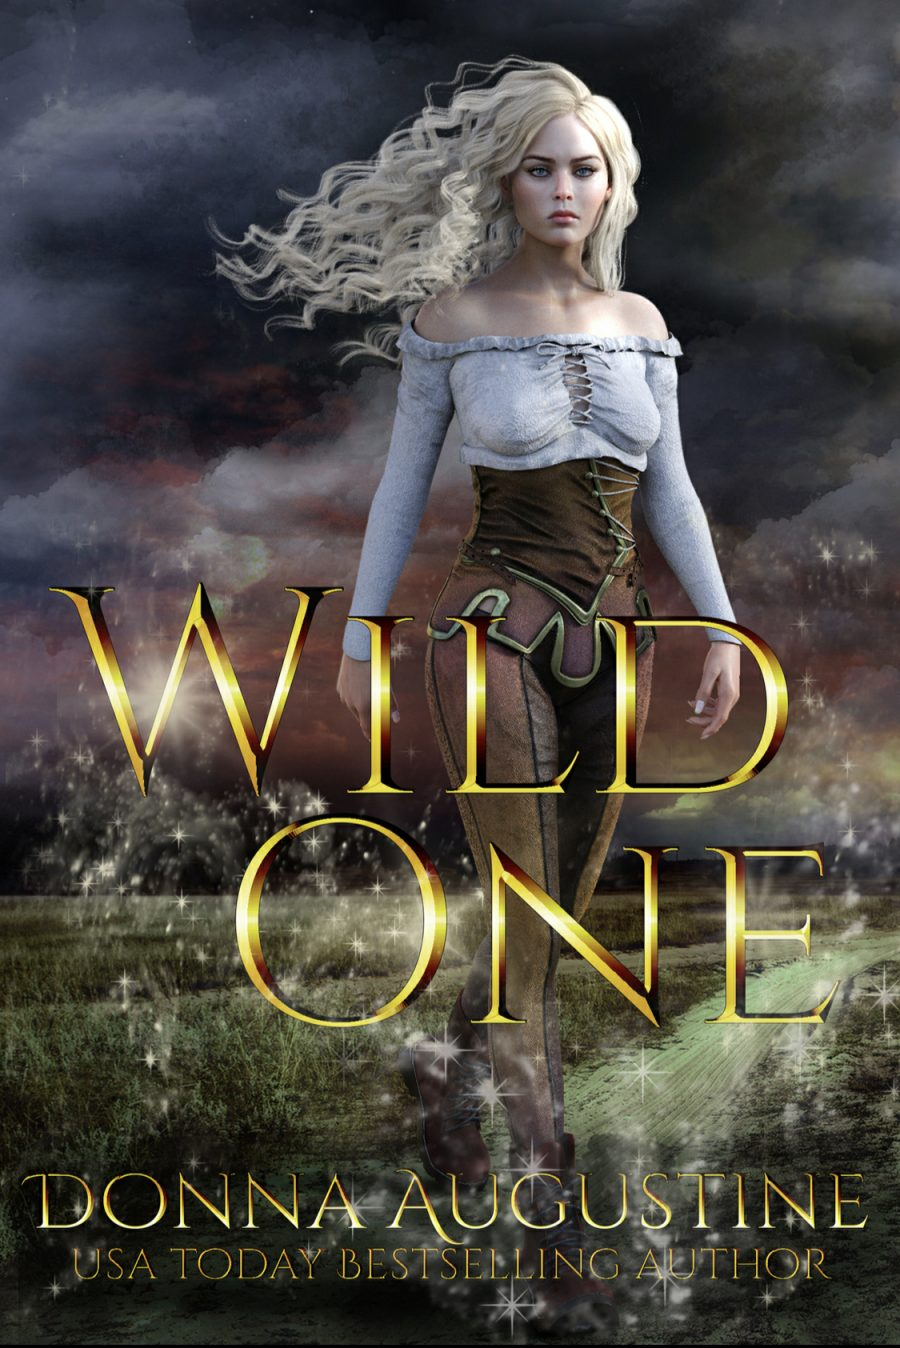 Wild One by Donna Augustine - A Book Review #BookReview #Review #Dystopian #Romance #Paranormal #PNR #NewSeries #Book1 #4Star #TheWilds #KindleUnlimited #KU